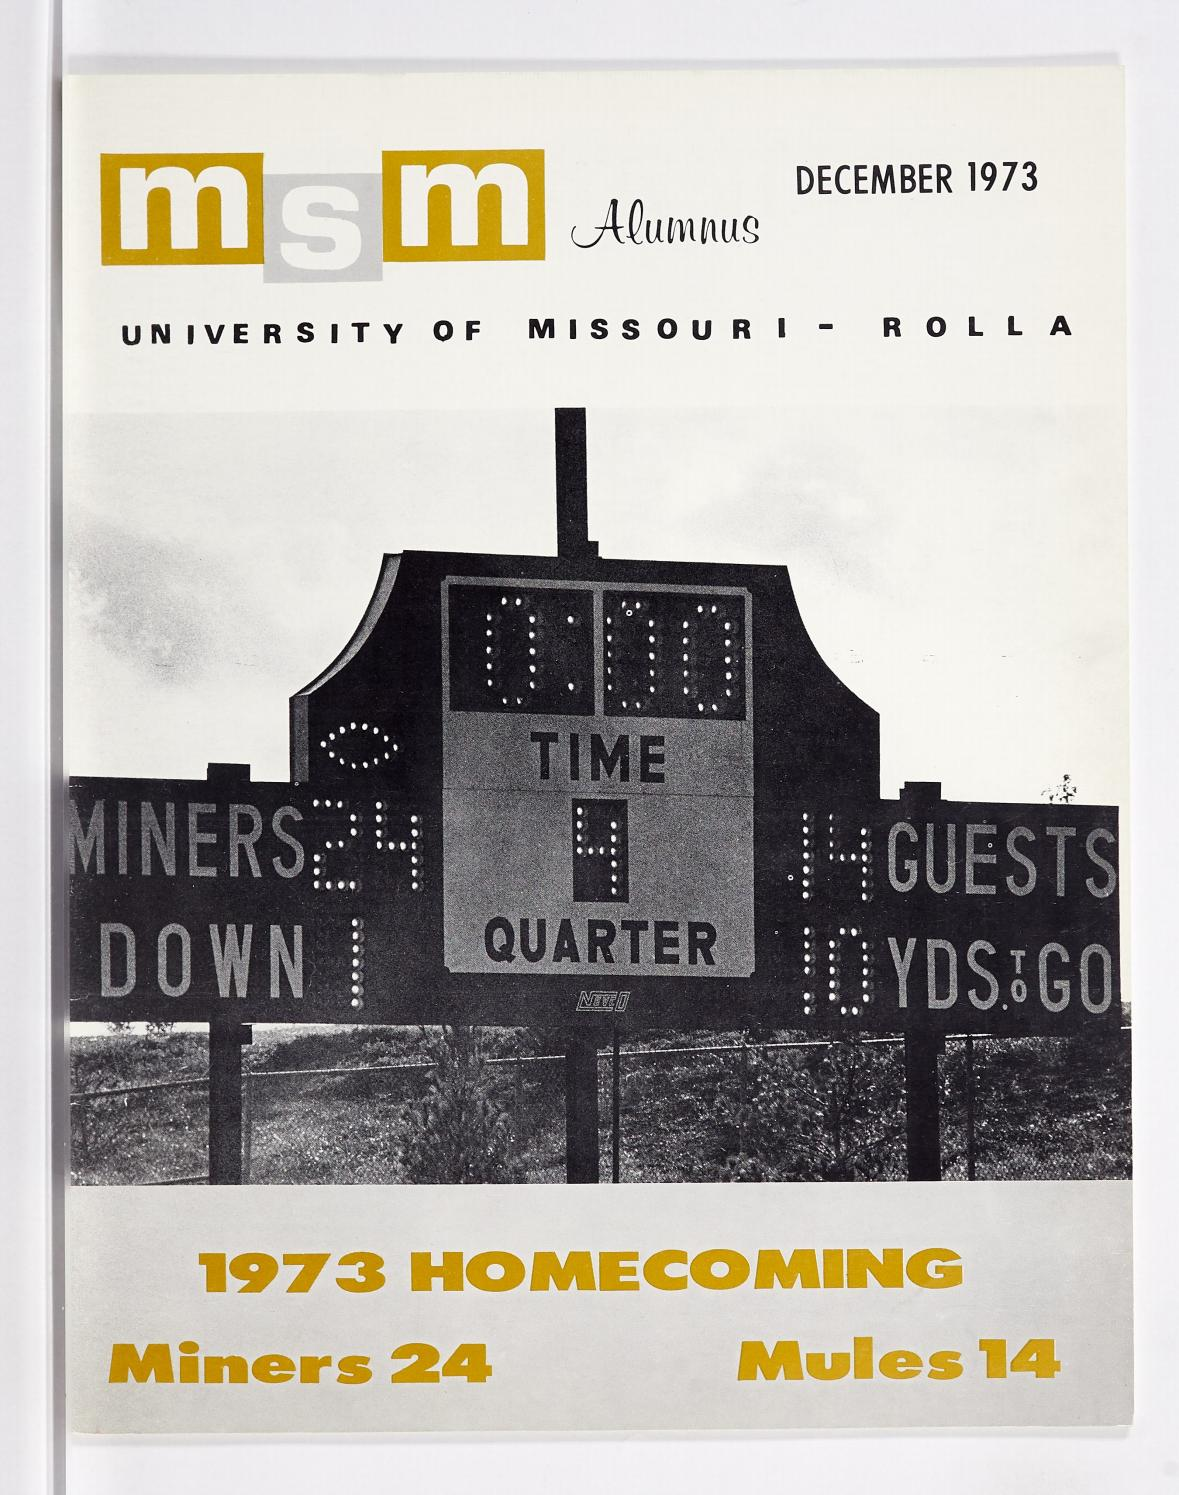 Missouri S T Magazine December 1973 By Missouri S T Library And Learning Resources Curtis Laws Wilson Library Issuu